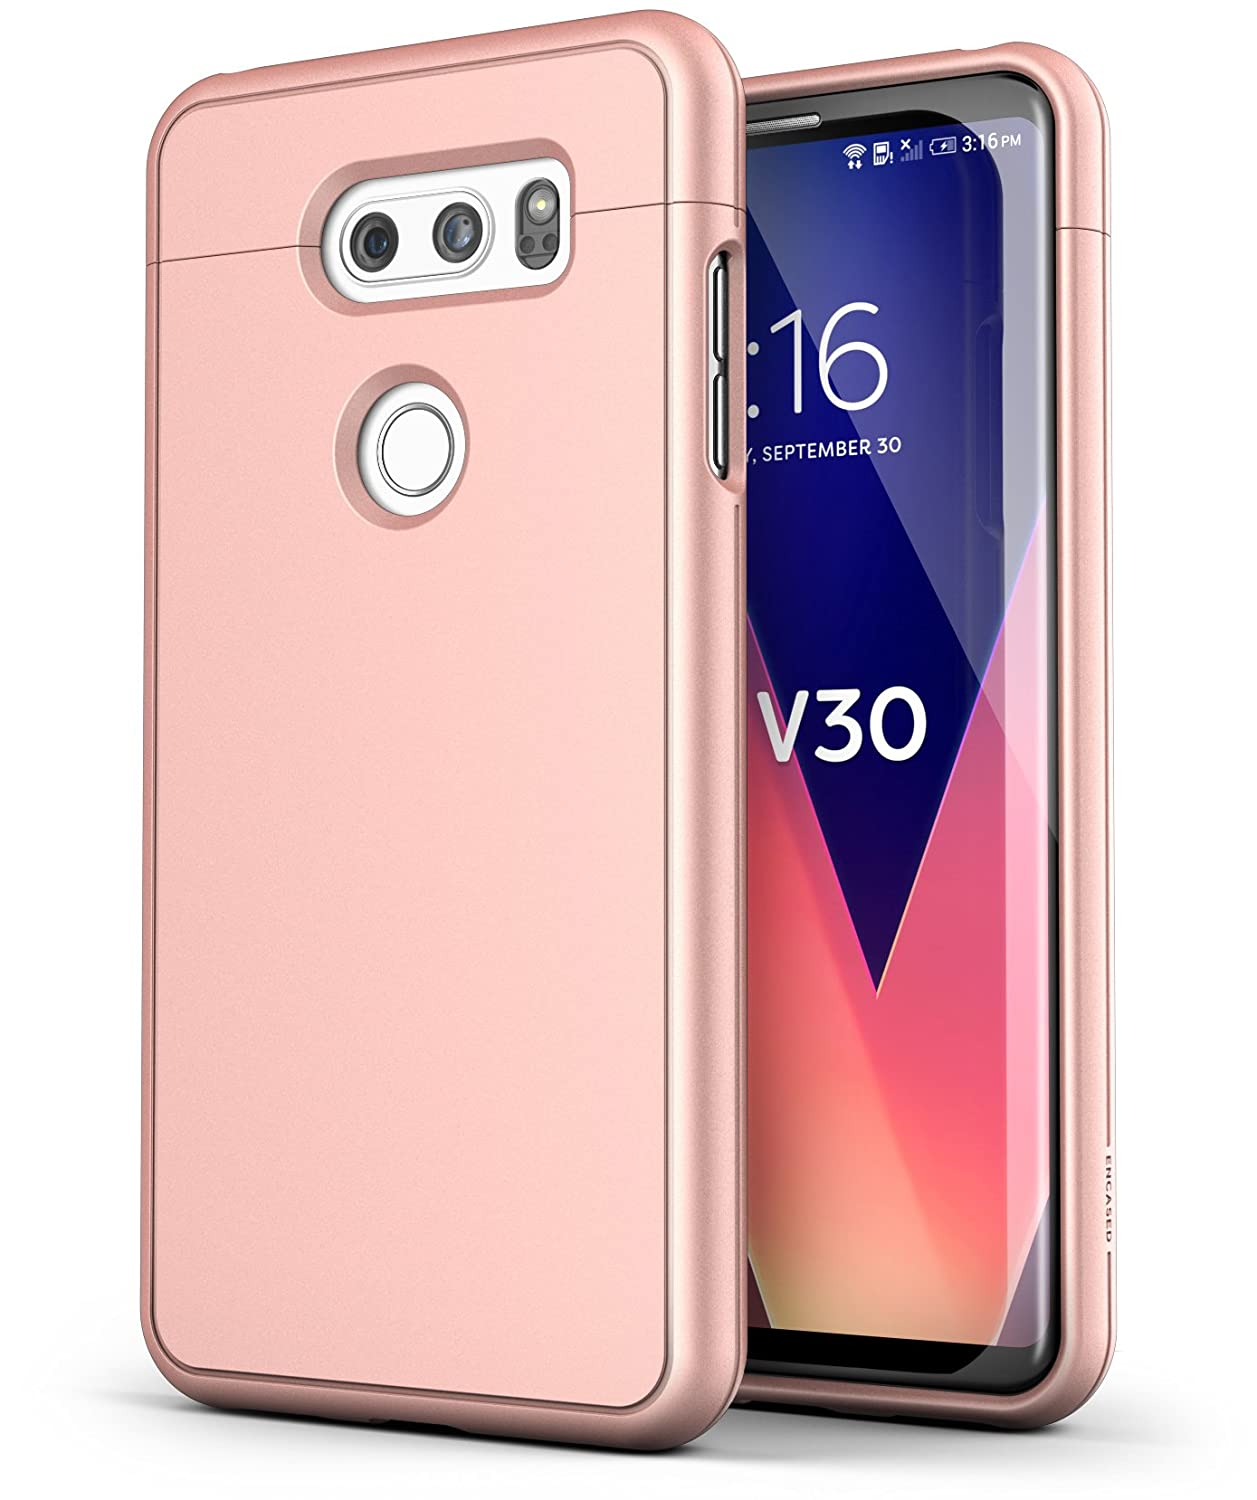 newest collection f9f25 aac75 LG V30 Case Rose Gold - Encased [SlimShield Edition] Slim Full Coverage  Protective Grip Phone Cases